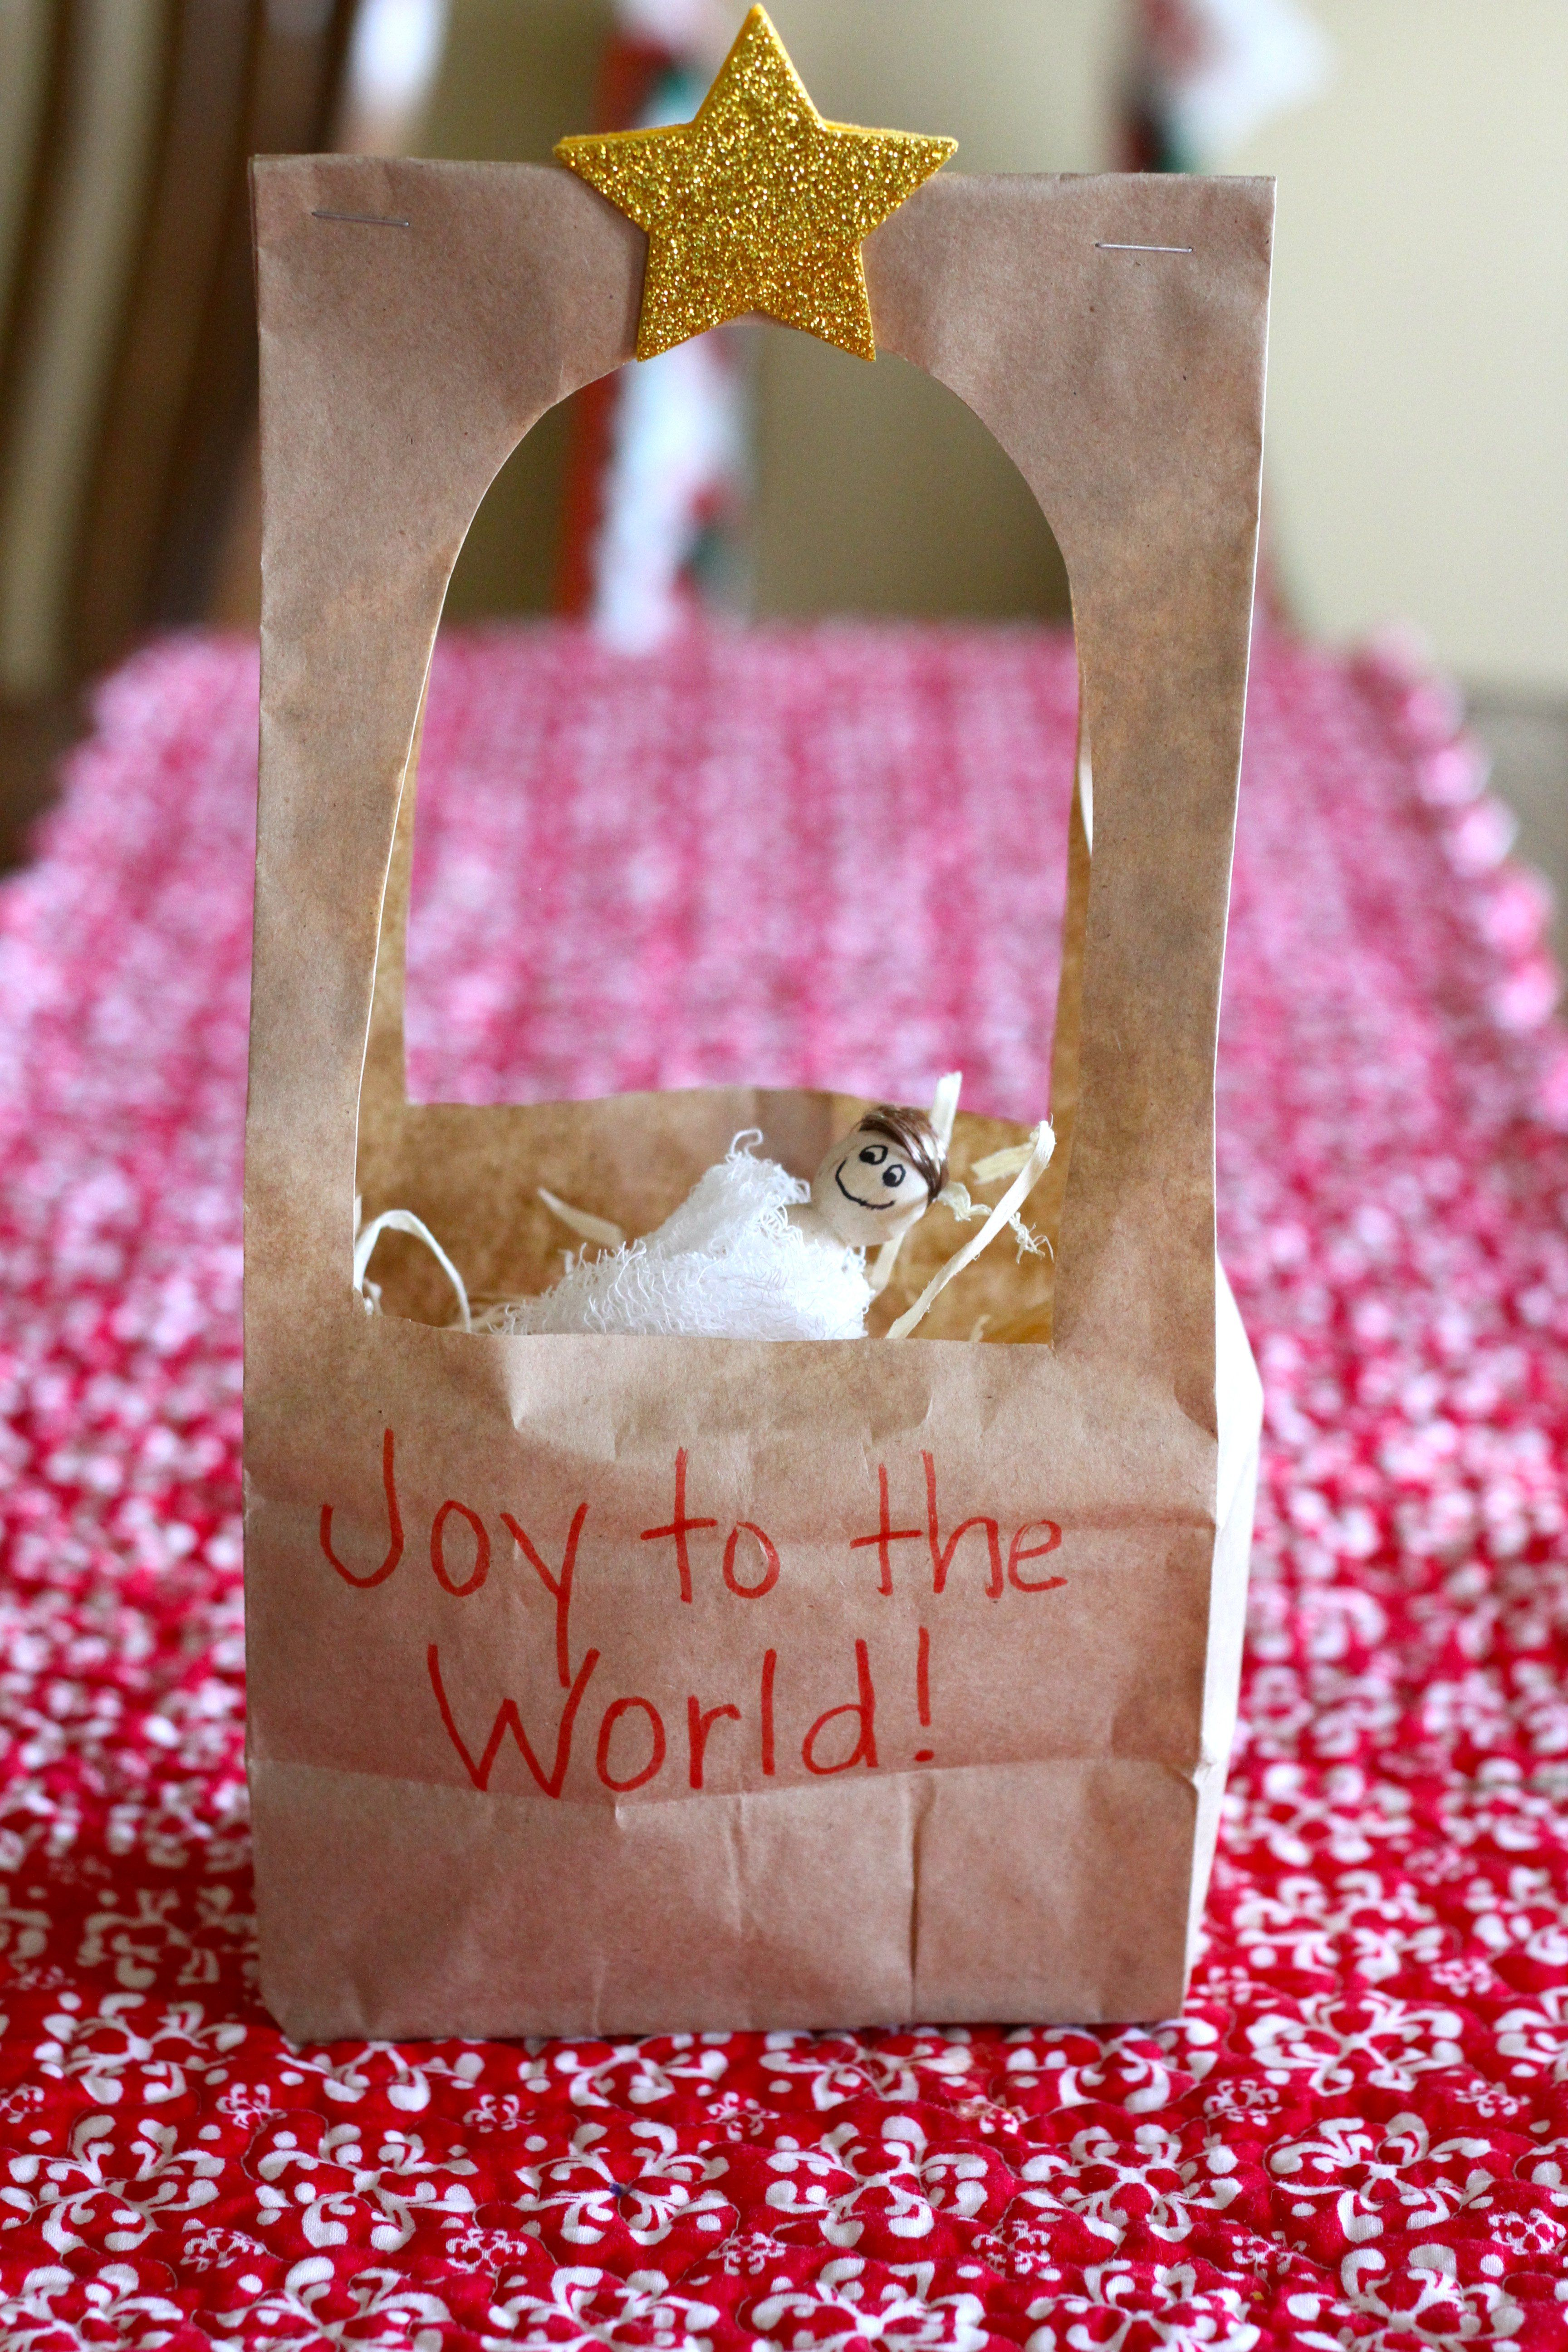 Paper Bag Manger Craft | Churches, Internet and Ads